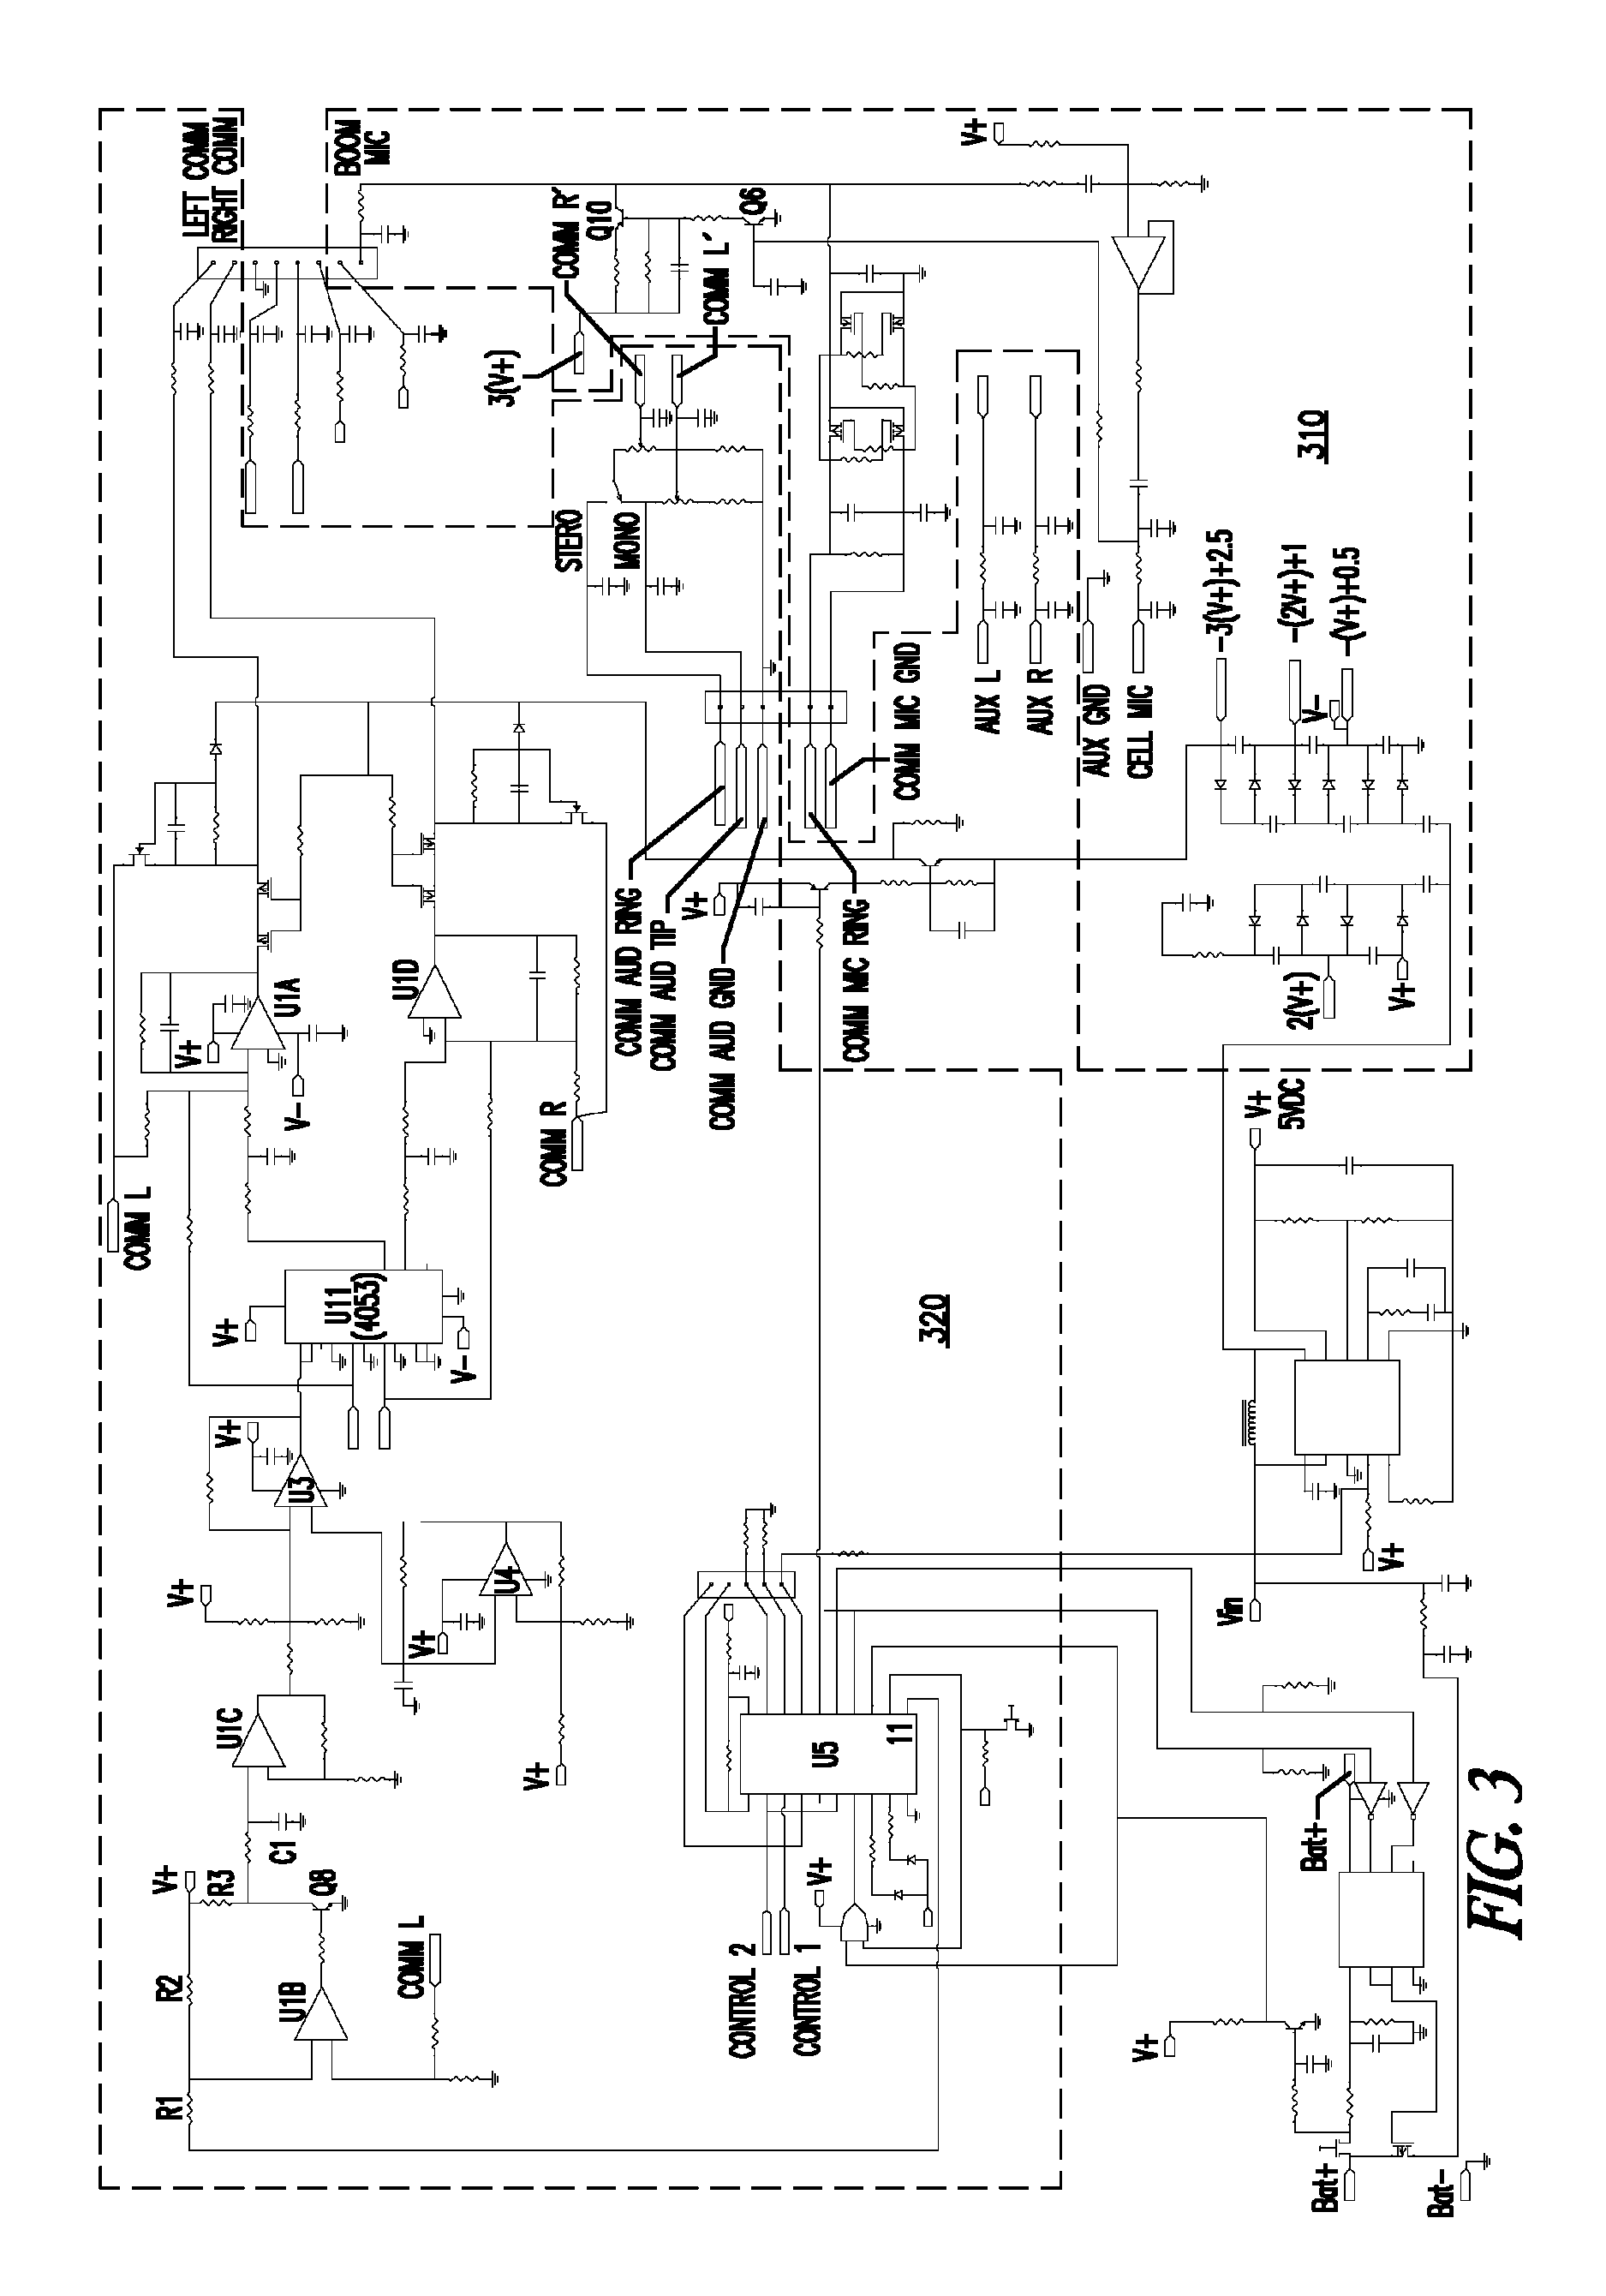 Headset Wiring Diagram Everything About Fm Transmitter Schematic Free Download Images Gallery